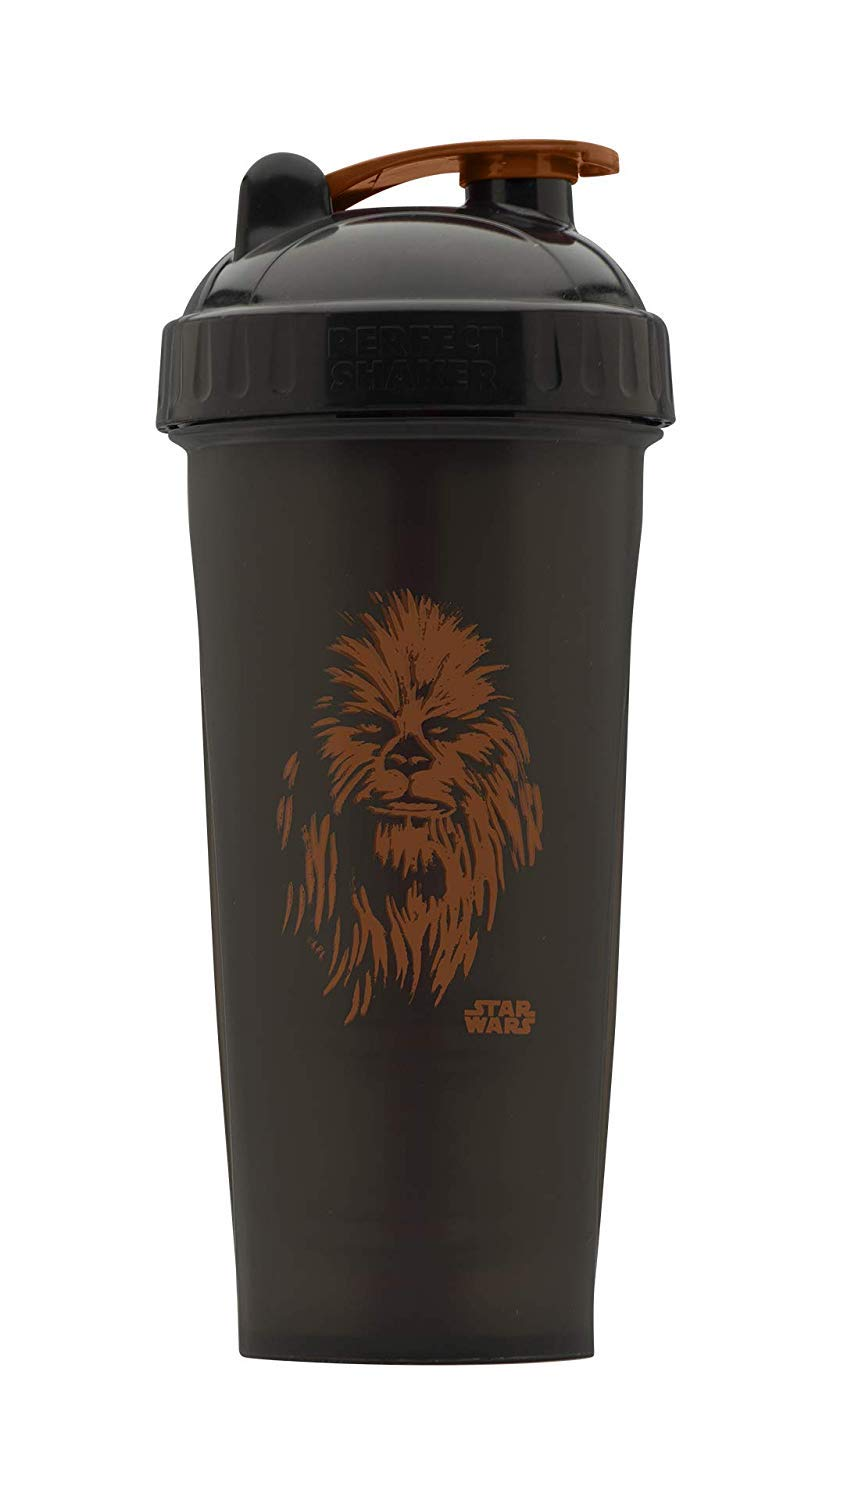 Performa Shaker - Star Wars Original Series Collection, Best Leak Free Bottle with Actionrod Mixing Technology for Your Sports & Fitness Needs! Dishwasher and Shatter Proof